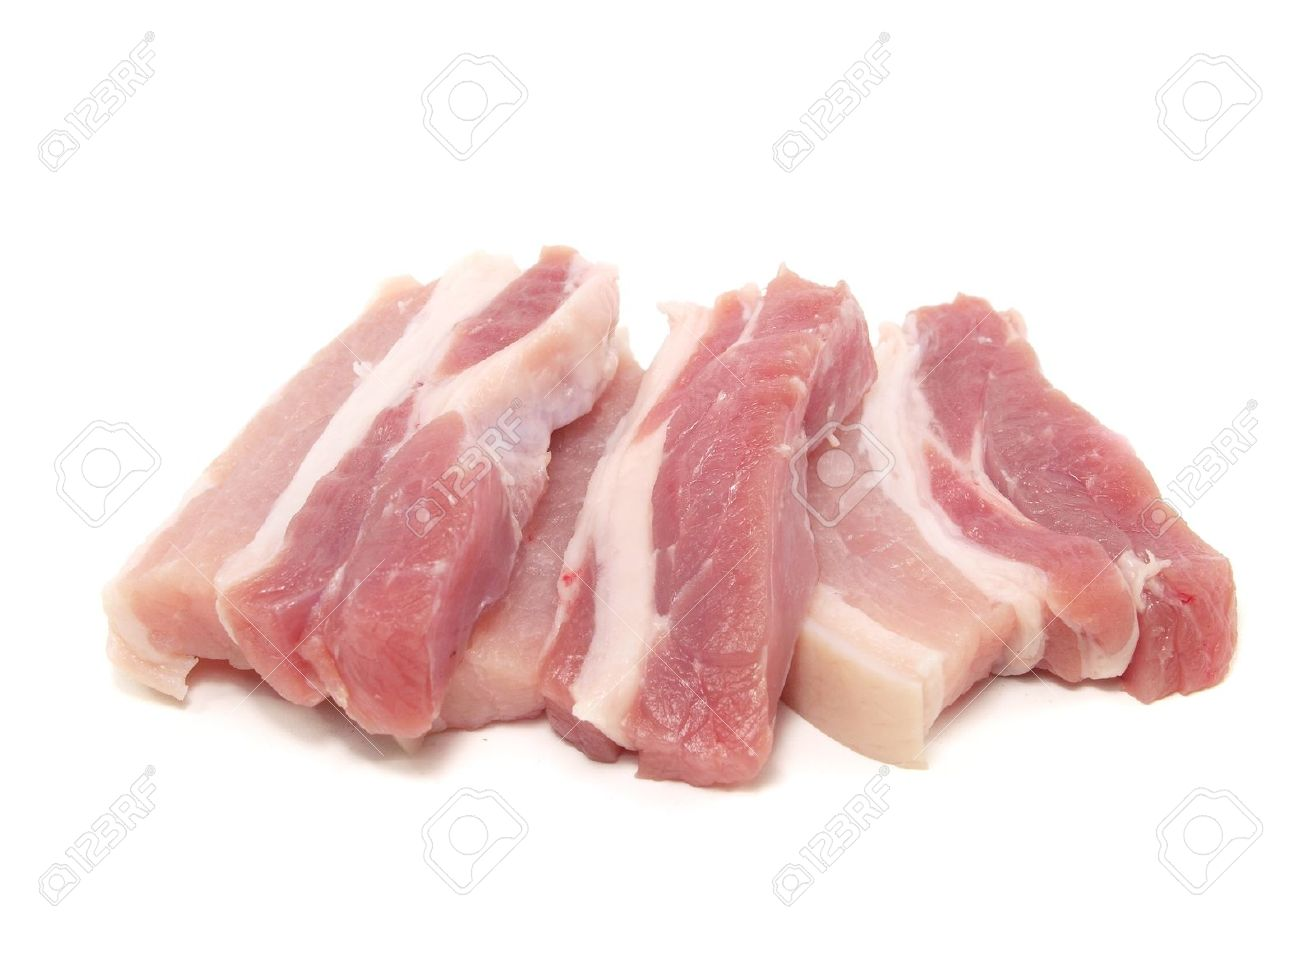 Pork Belly On A White Background Stock Photo, Picture And Royalty.